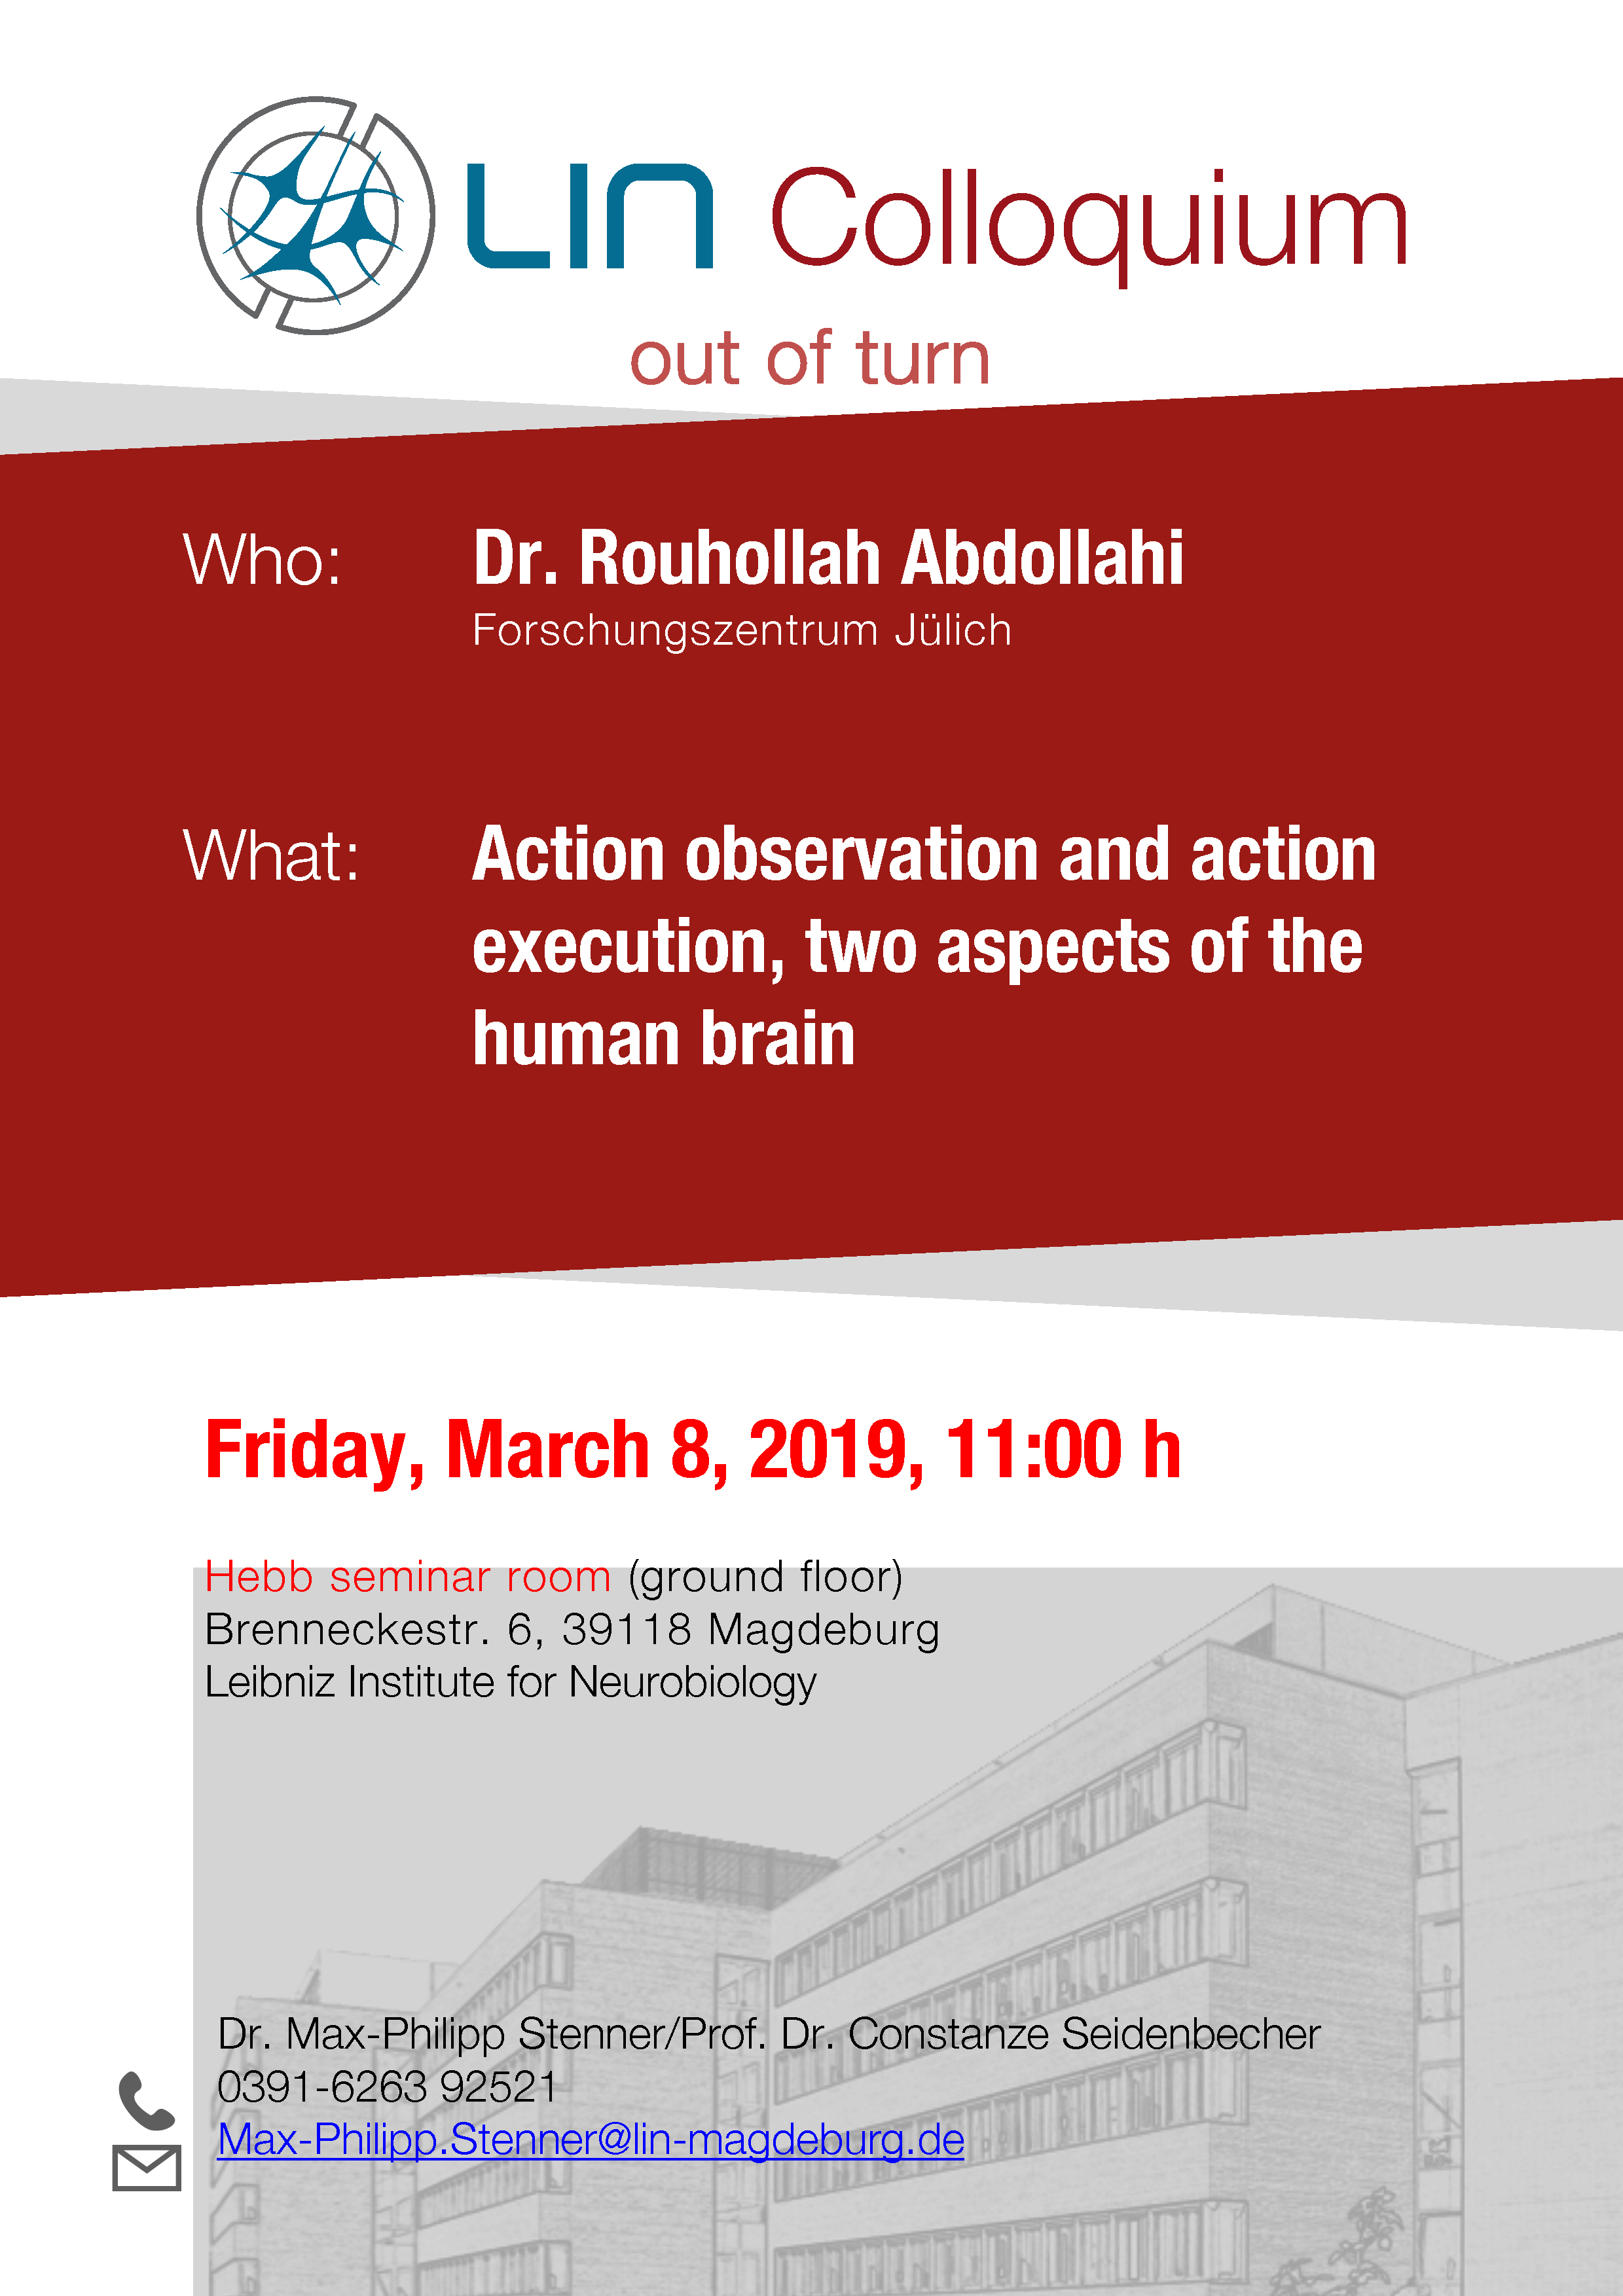 LIN Colloquium: Action observation and action execution, two aspects of the human brain @ Hebb-Seminar-Room (ground floor), Leibniz Institute for Neurobiology